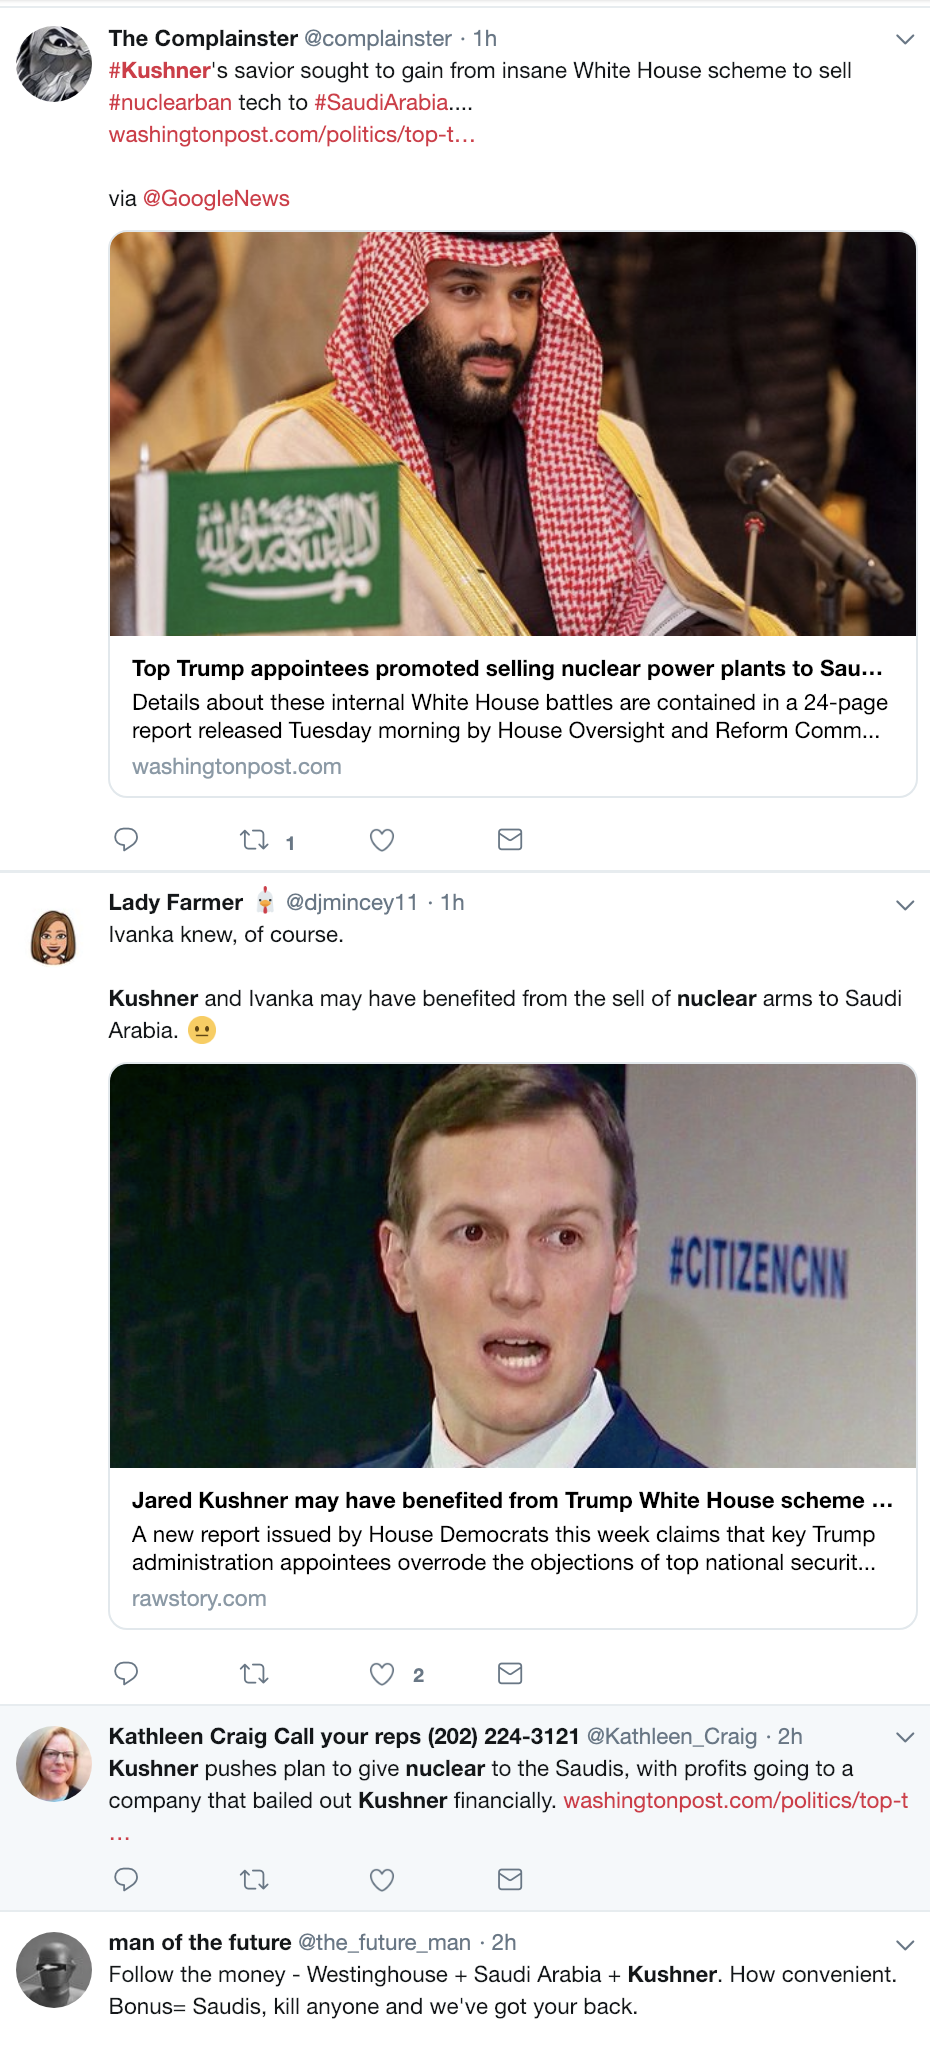 Screen-Shot-2019-02-19-at-1.28.40-PM Whistleblower Report Unravels Jared Kushner's Saudi Nuclear Scheme Corruption Crime Donald Trump Foreign Policy Gun Control Human Rights Military National Security Politics Top Stories